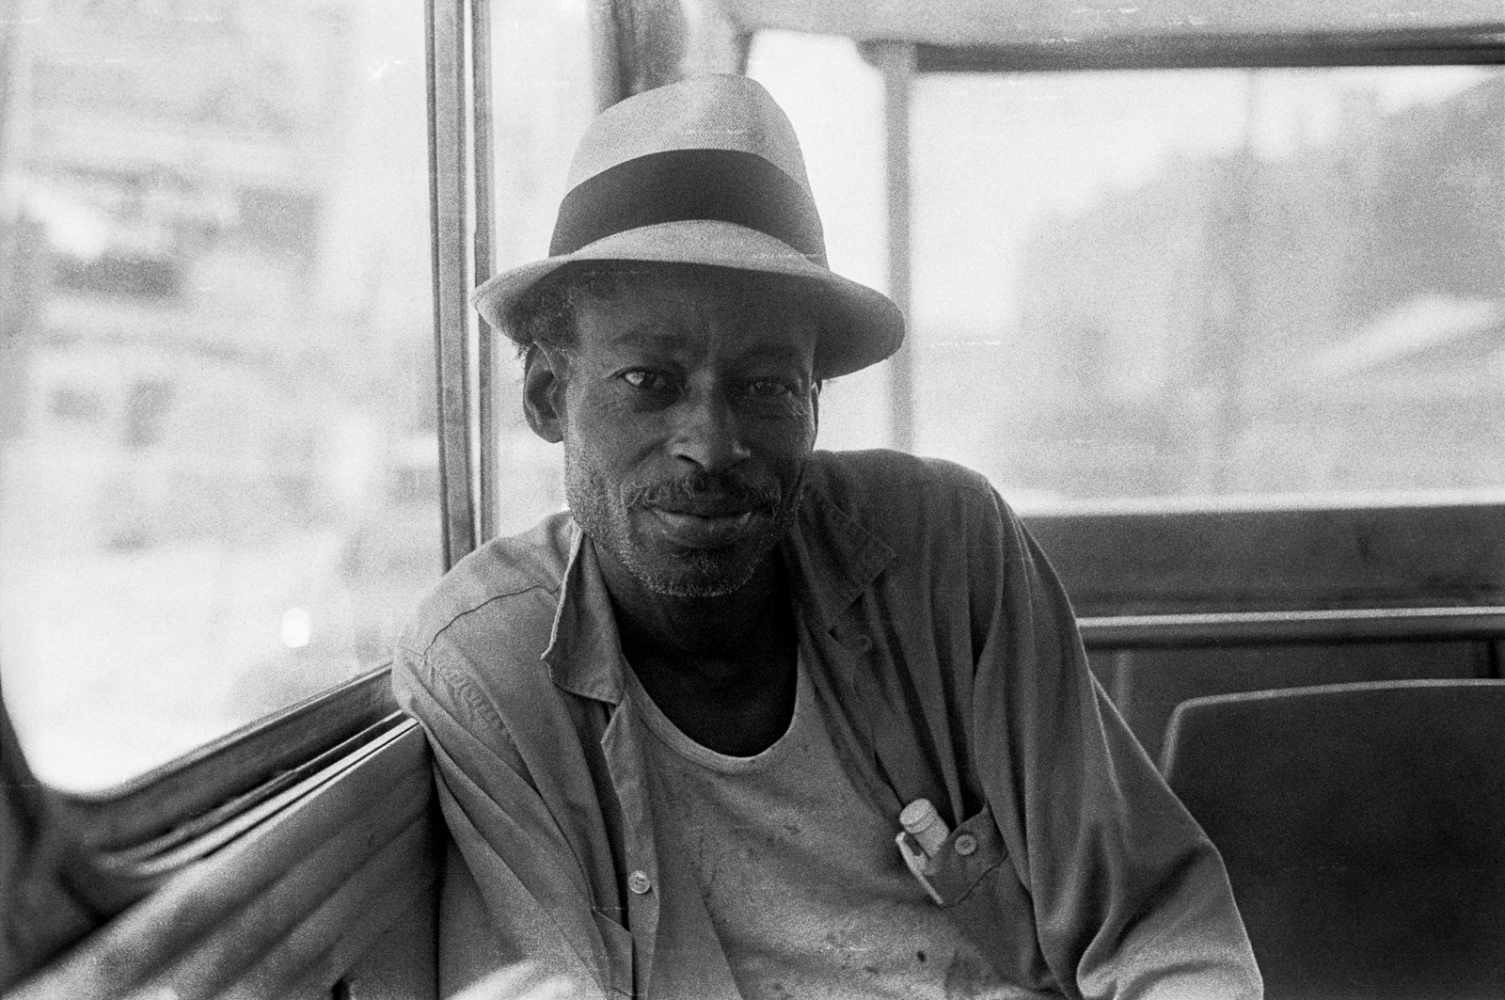 Man on the Magazine Street bus 1974, with whom I exchanged a smile and a short conversation.